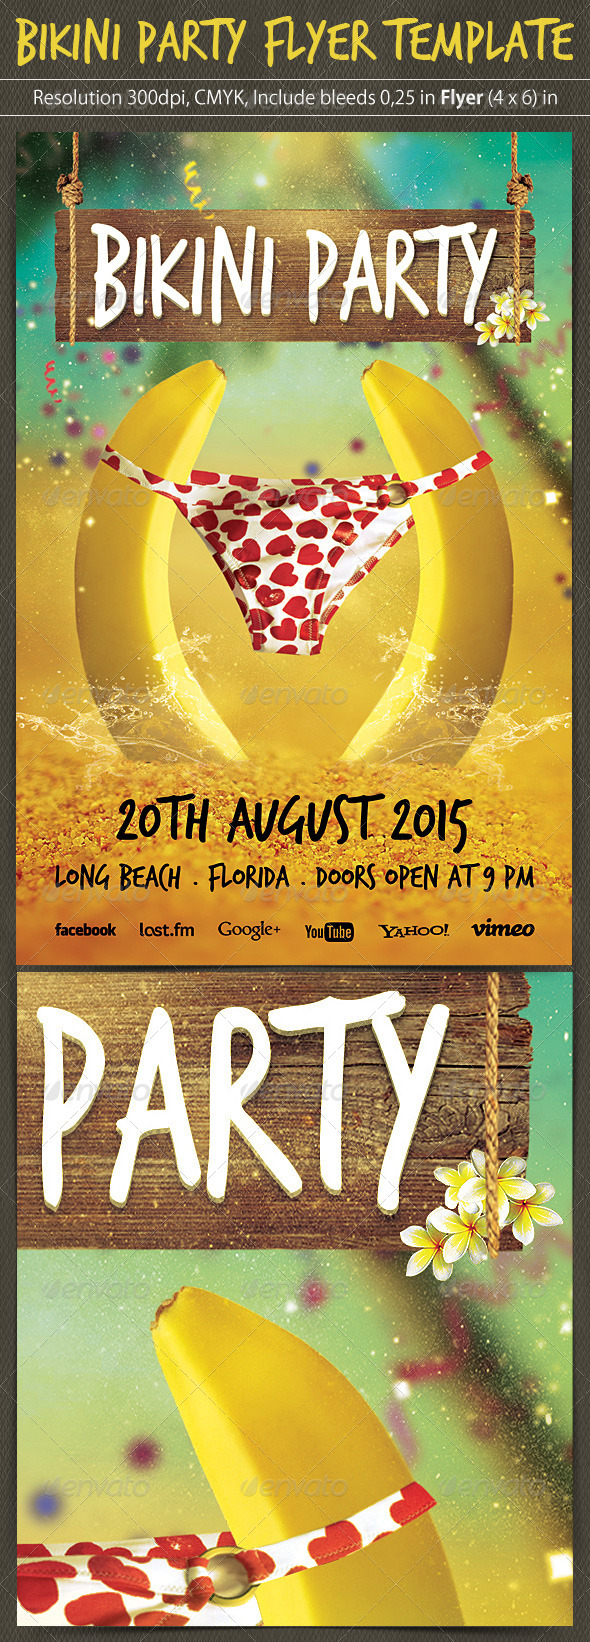 GraphicRiver Bikini Party Flyer Template 5245065